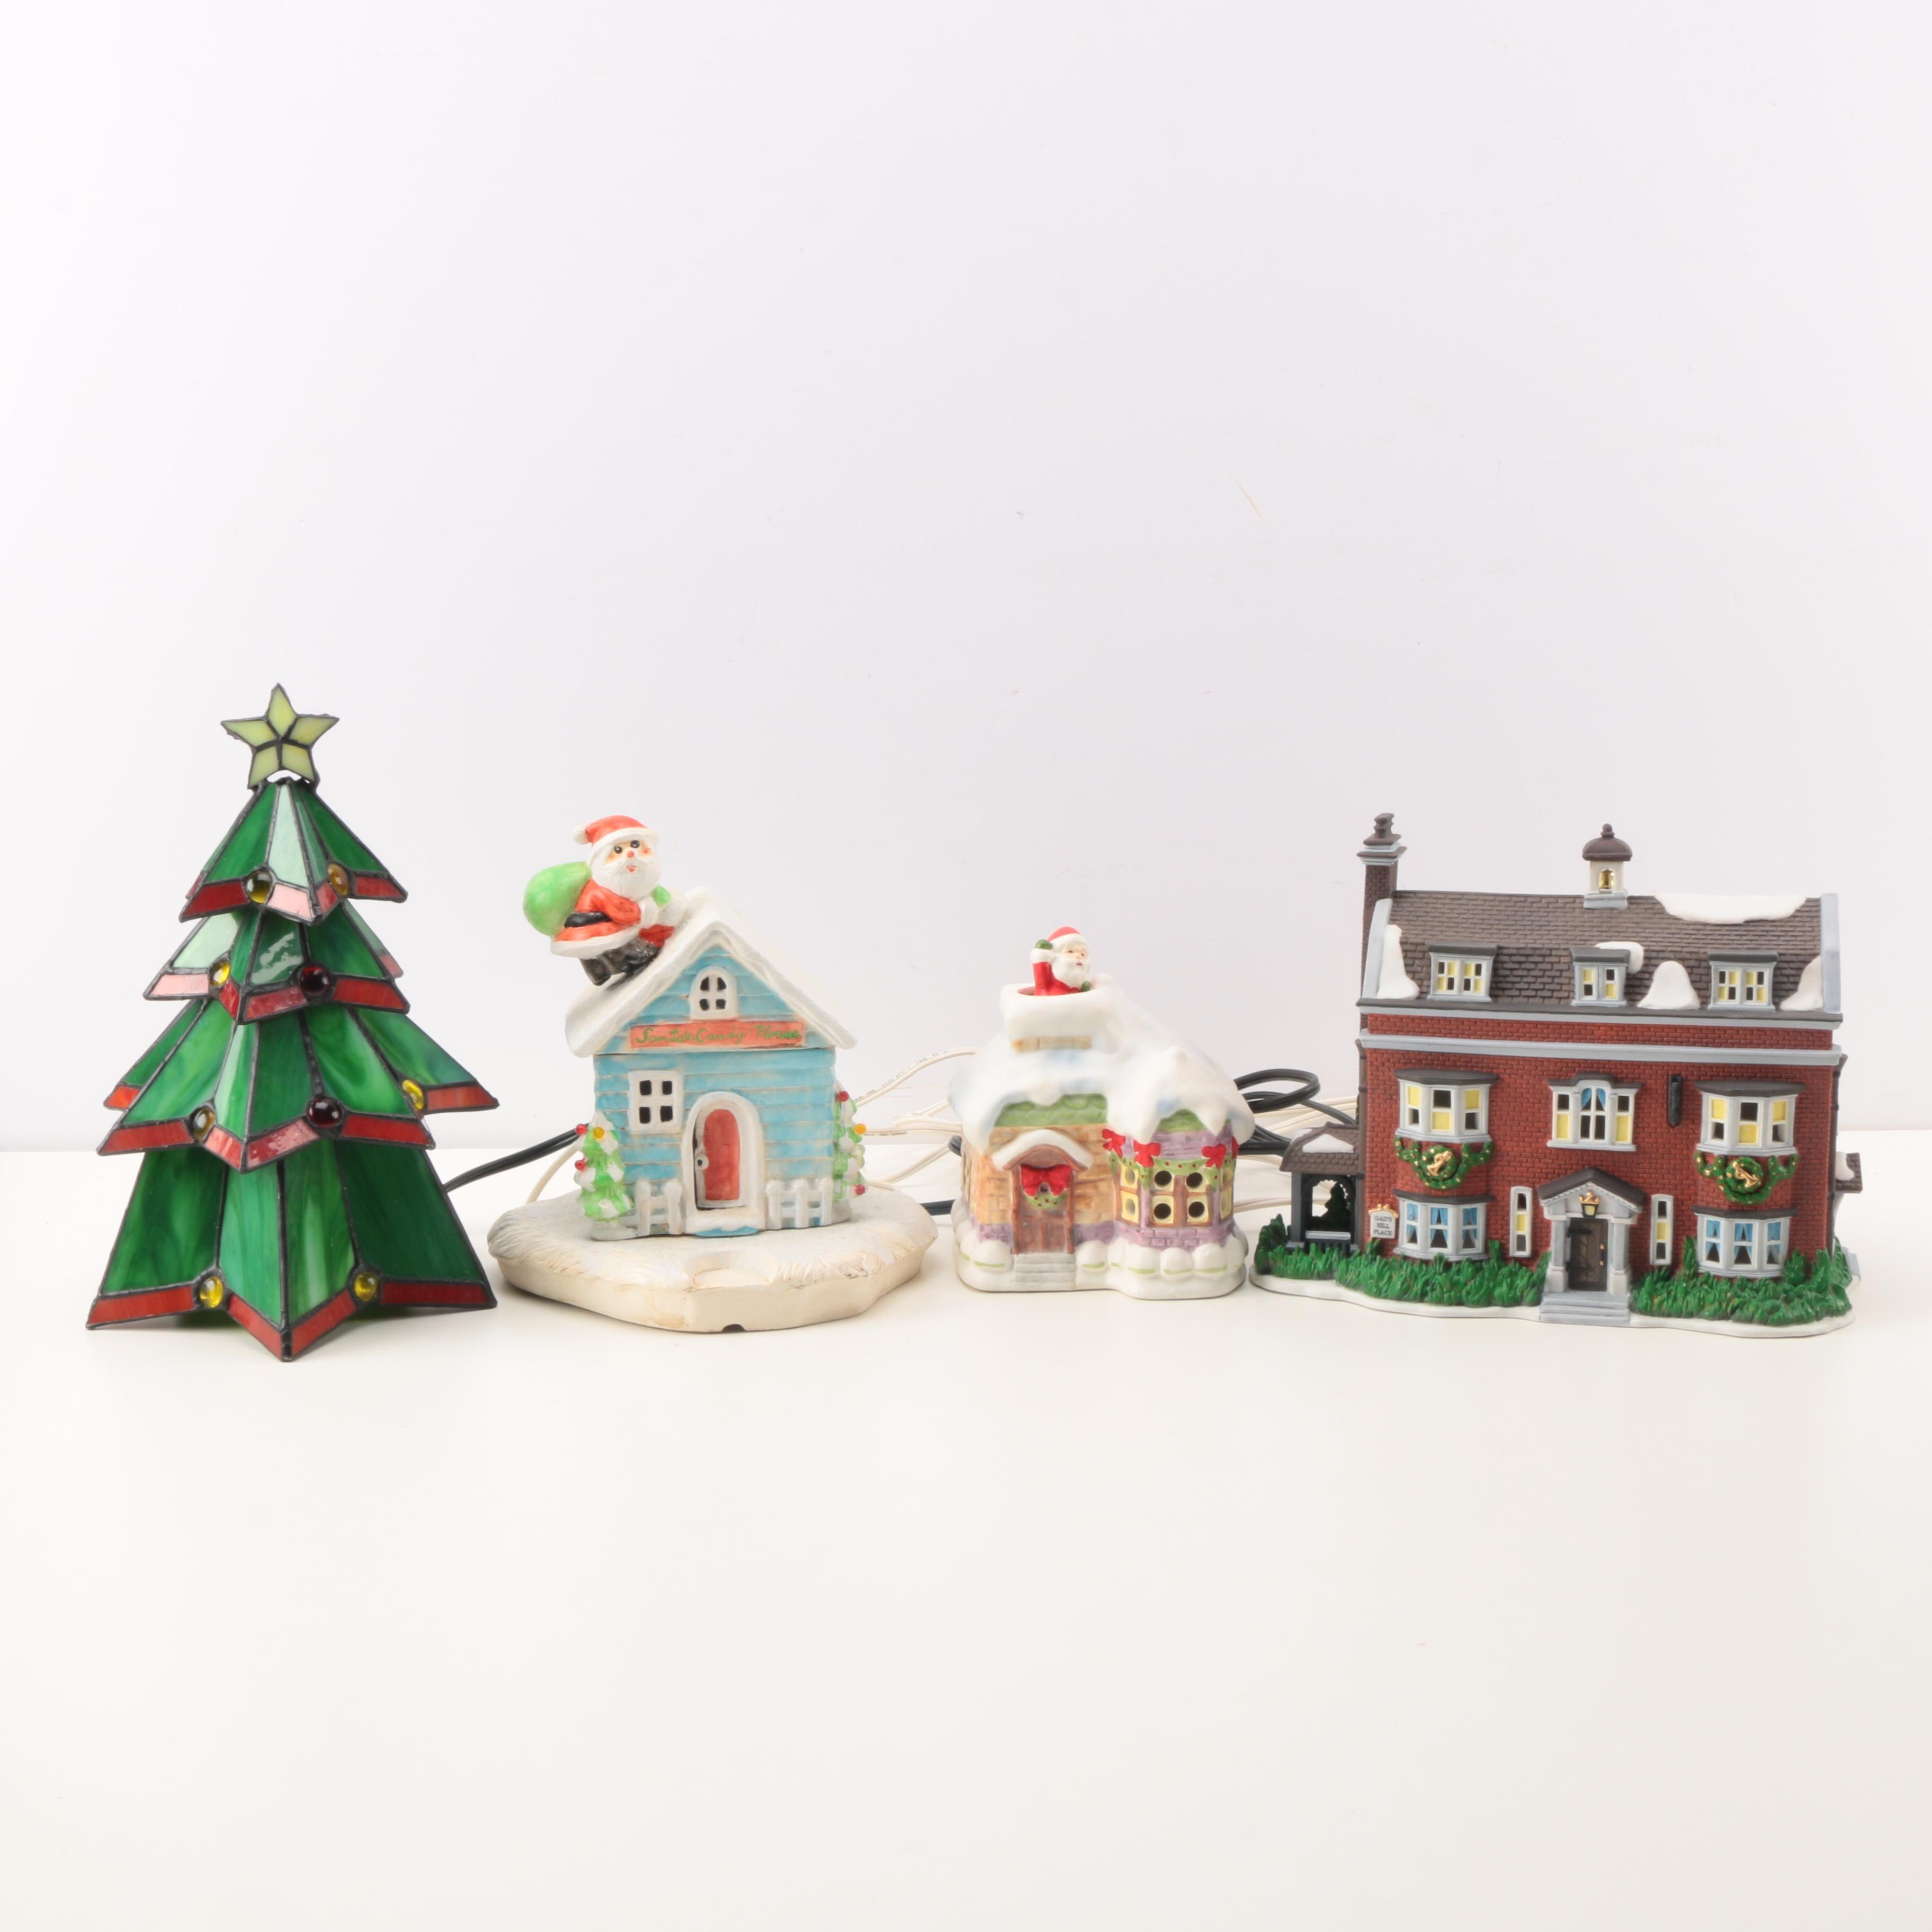 Holiday Decorations Including Christmas Village Pieces